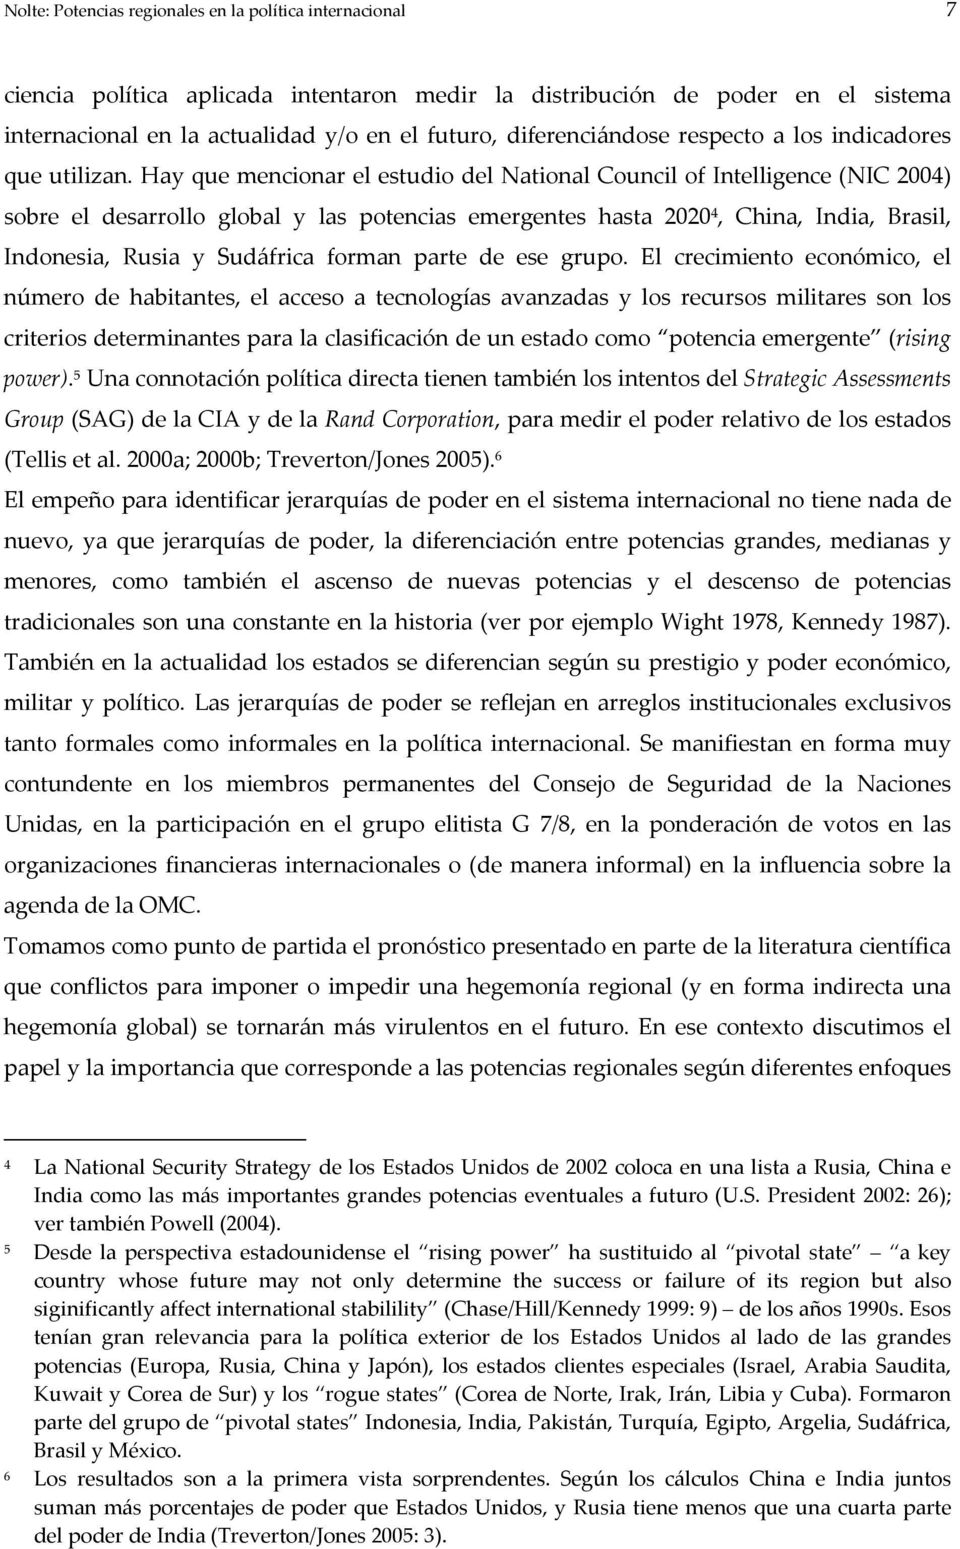 Hay que mencionar el estudio del National Council of Intelligence (NIC 2004) sobre el desarrollo global y las potencias emergentes hasta 2020 4, China, India, Brasil, Indonesia, Rusia y Sudáfrica